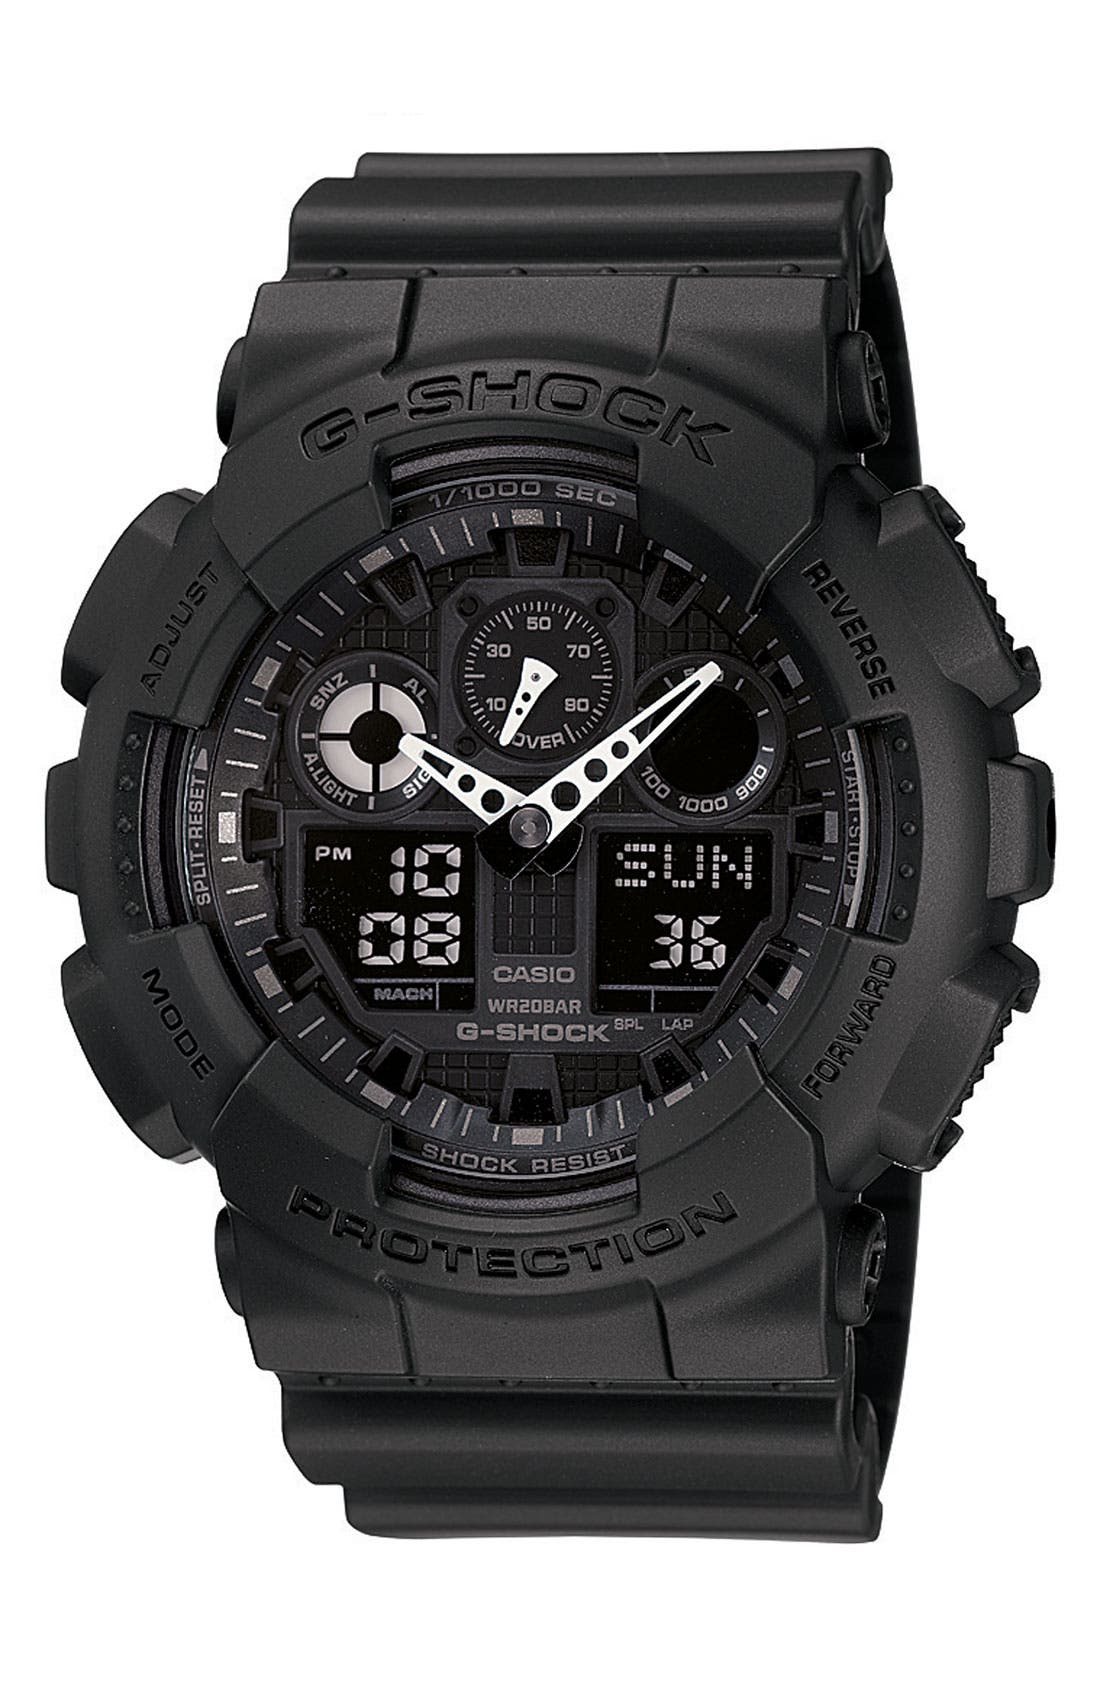 G-SHOCK BABY-G, G-Shock 'Big Combi' Watch, 55mm x 51mm, Main thumbnail 1, color, BLACK/ BLACK